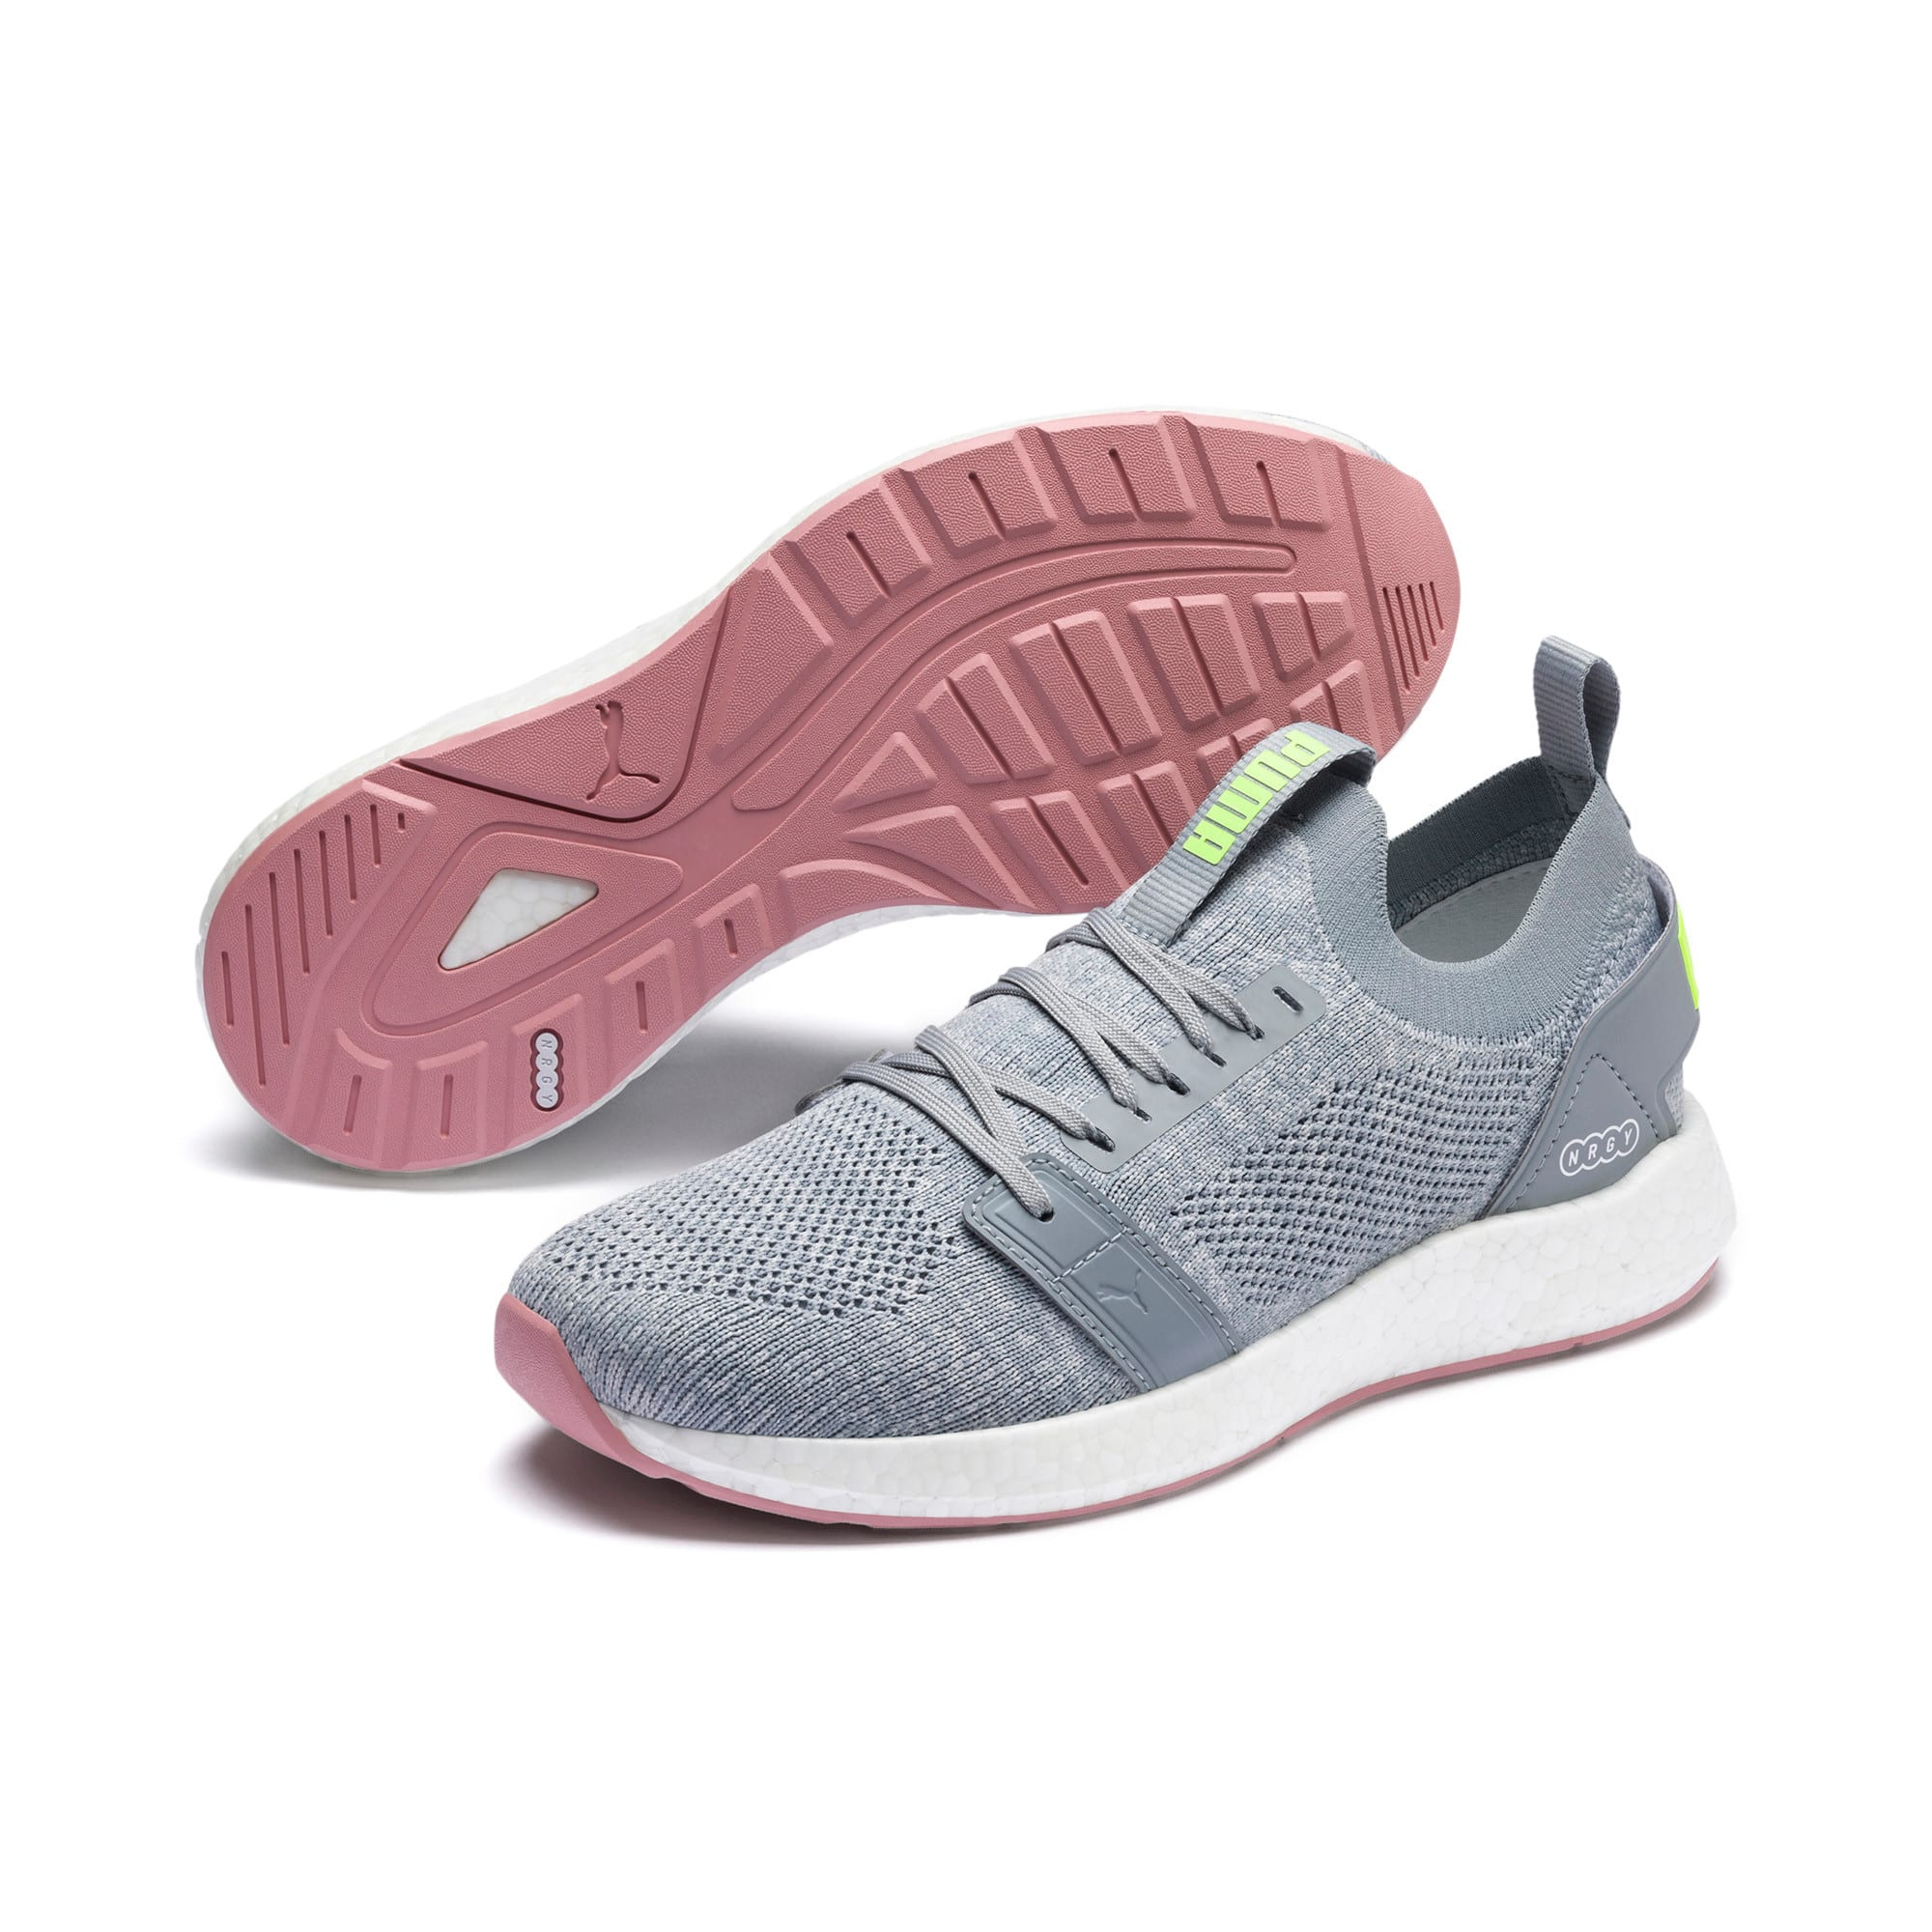 Thumbnail 3 of NRGY Neko Engineer Knit Women's Running Shoes, Quarry-Bridal Rose, medium